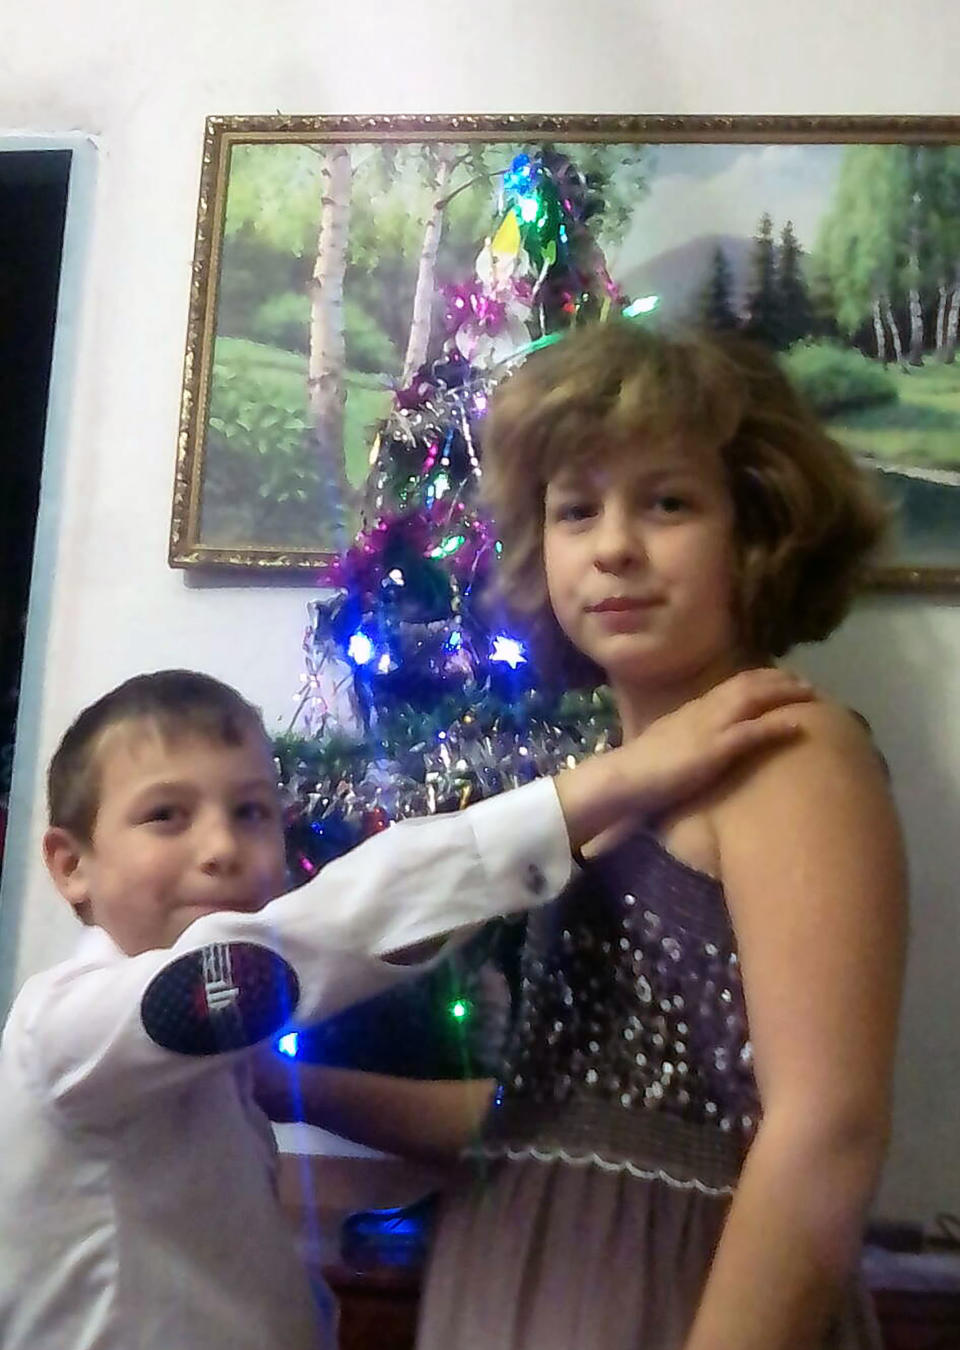 The brother and sister in front of a Christmas tree. Source: East2West/Australscope